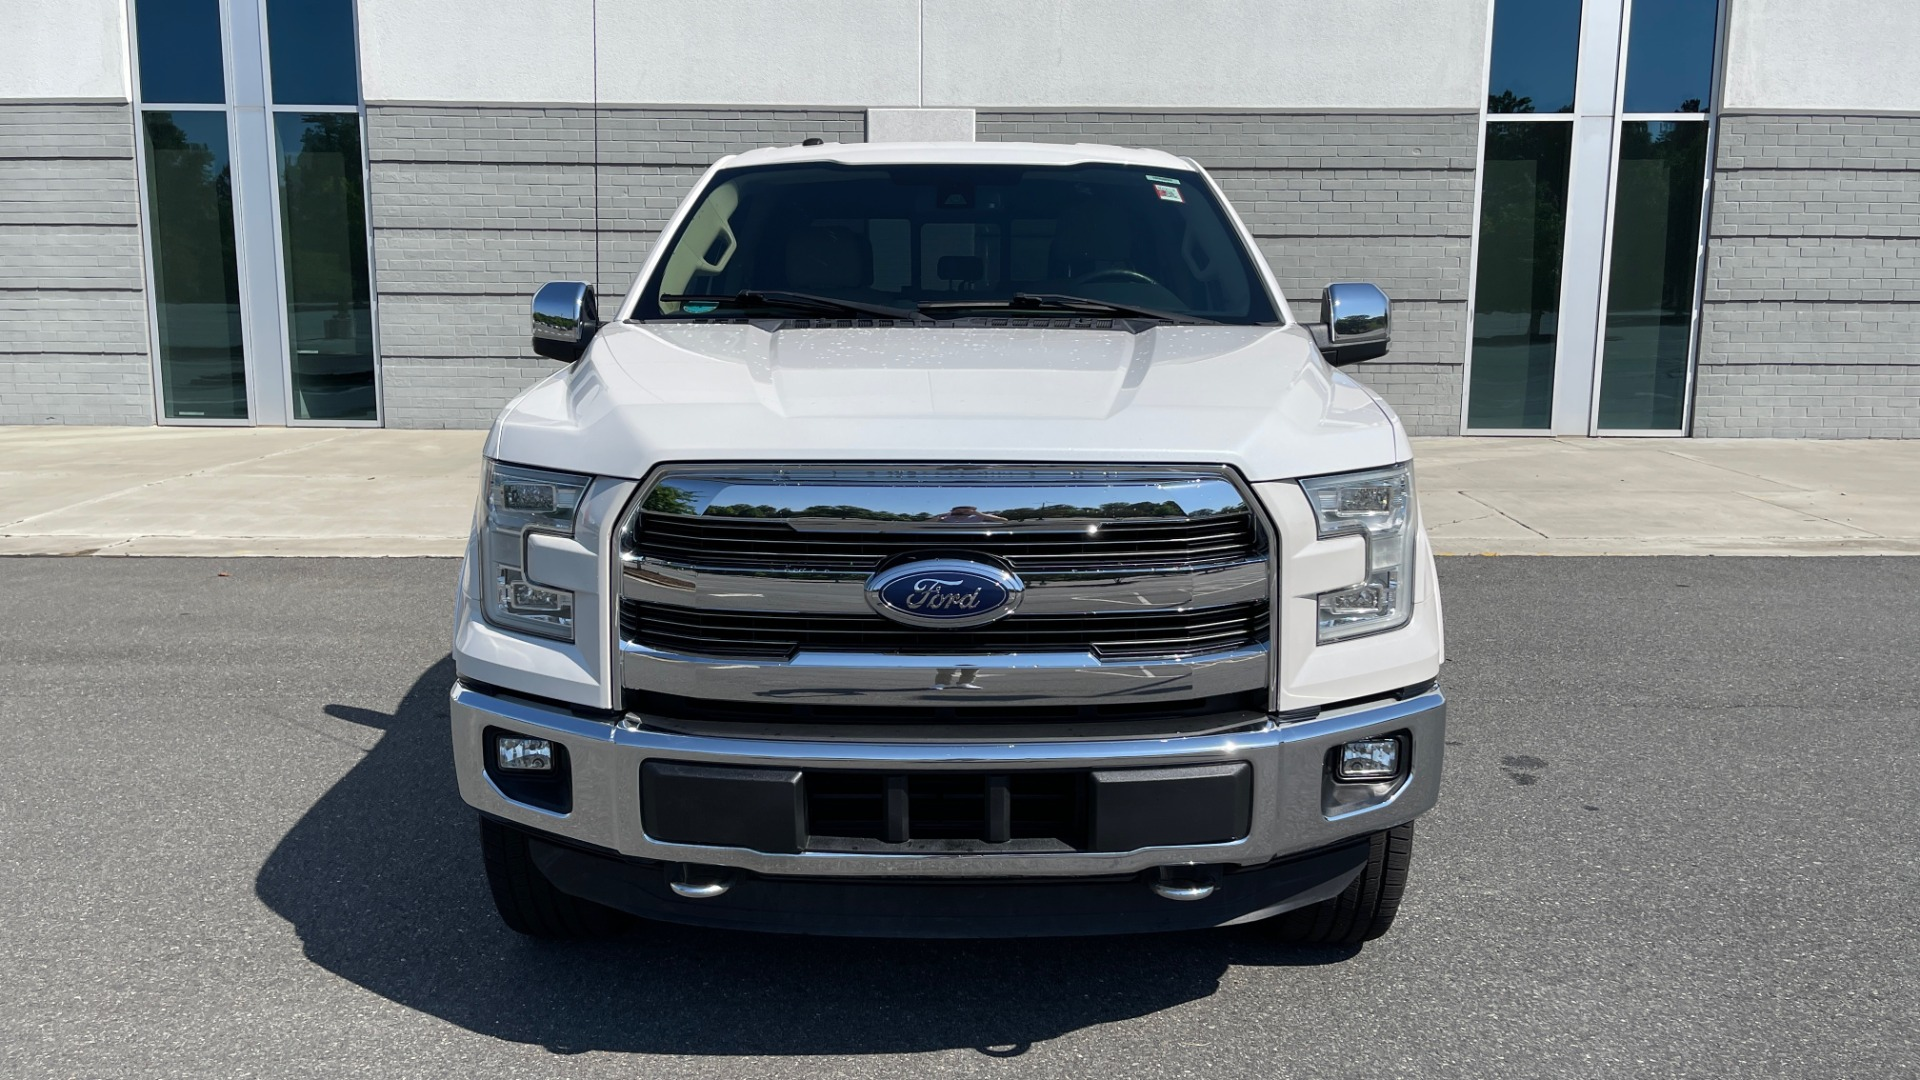 Used 2016 Ford F-150 LARIAT 4X4 / 3.5L V6 / 6-SPD AUTO / BLIS / SONY / NAV / REARVIEW for sale $37,500 at Formula Imports in Charlotte NC 28227 5